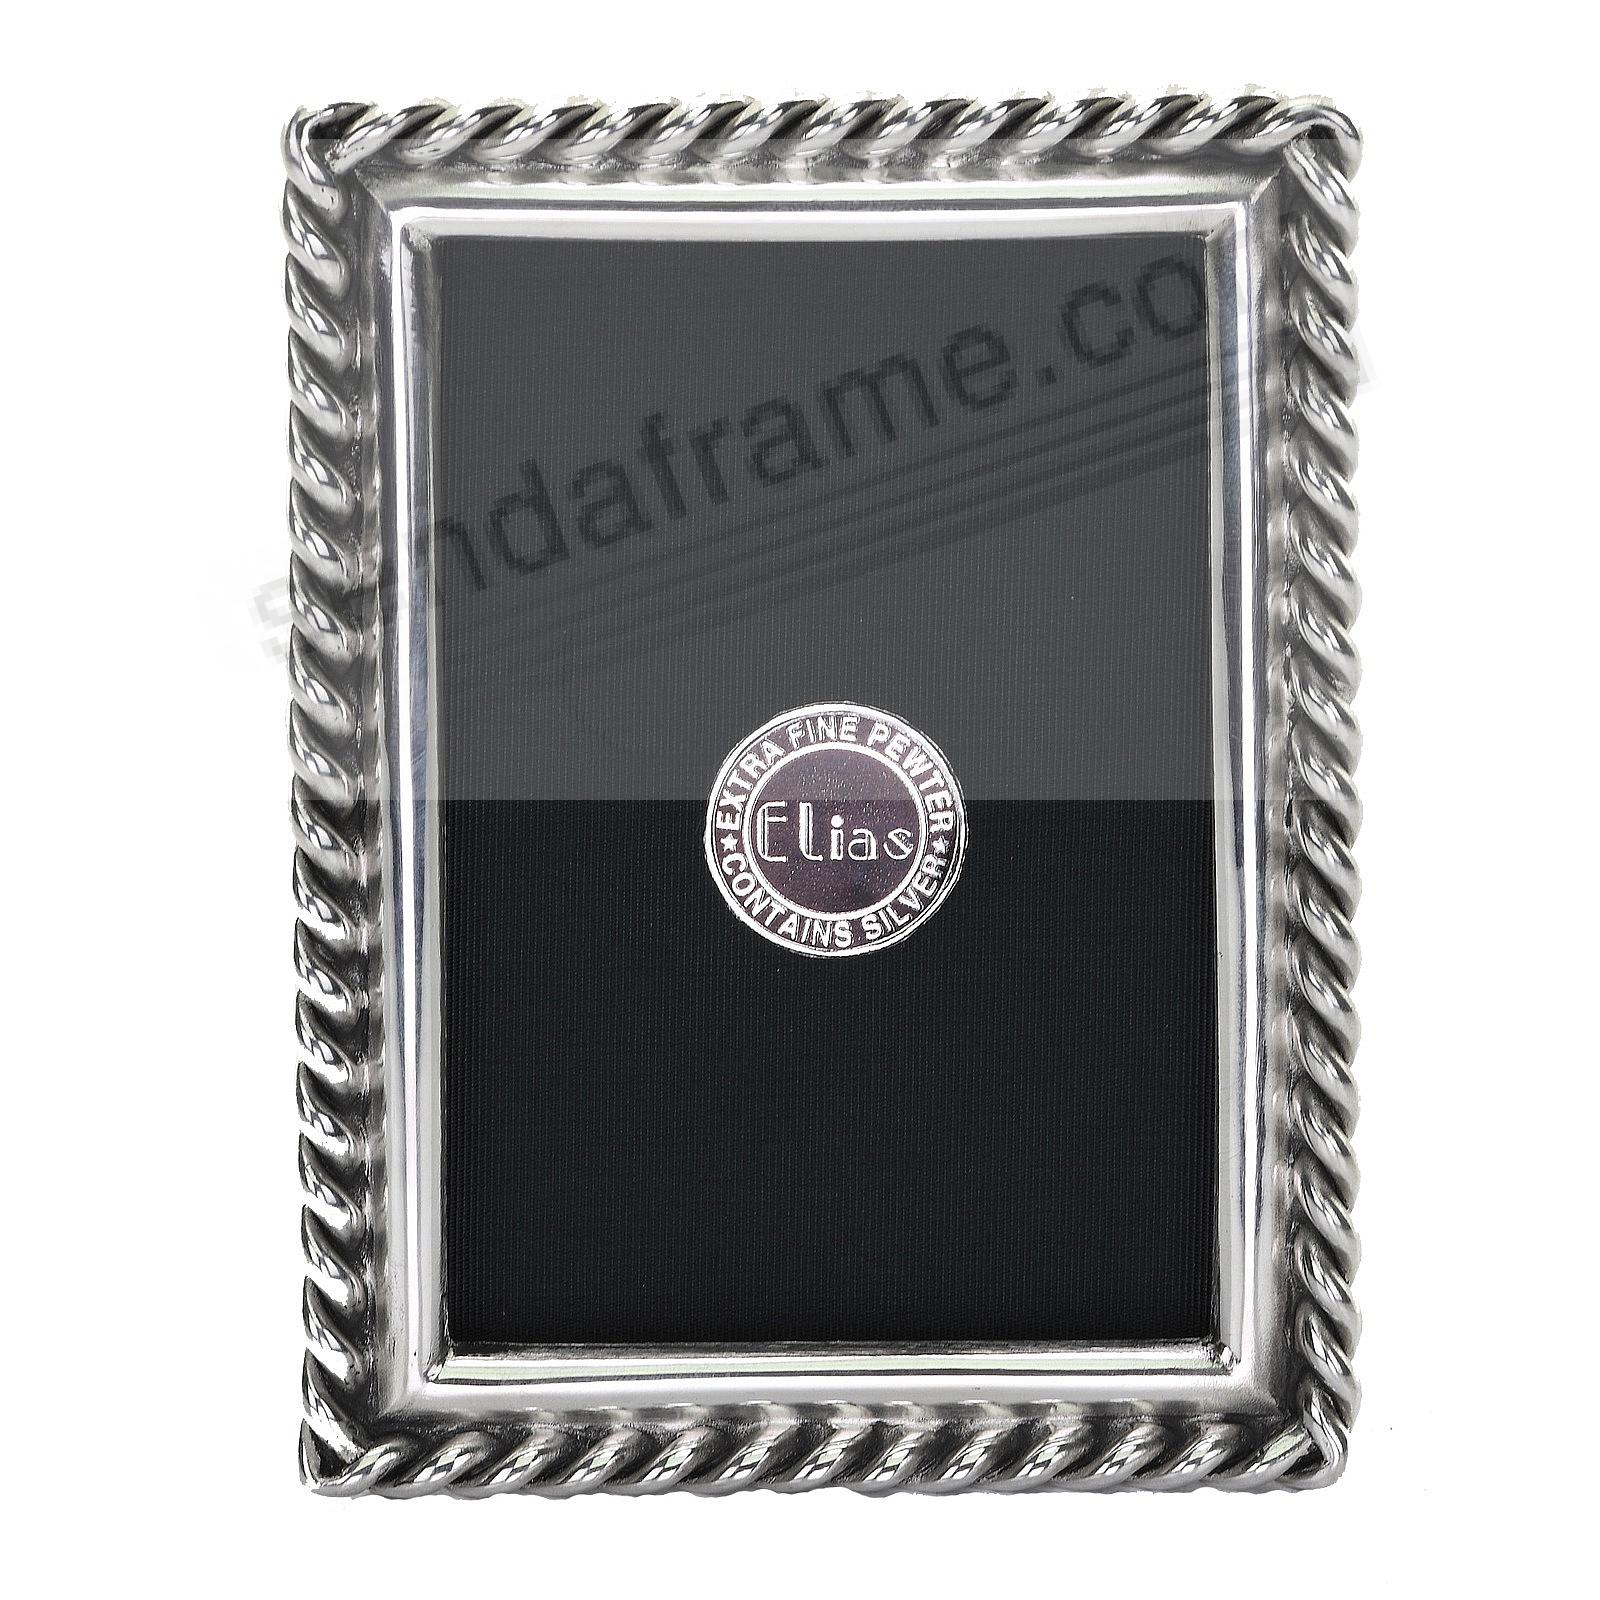 CHAIN Fine Silvered Pewter frame 2½x3½ by Elias Artmetal®